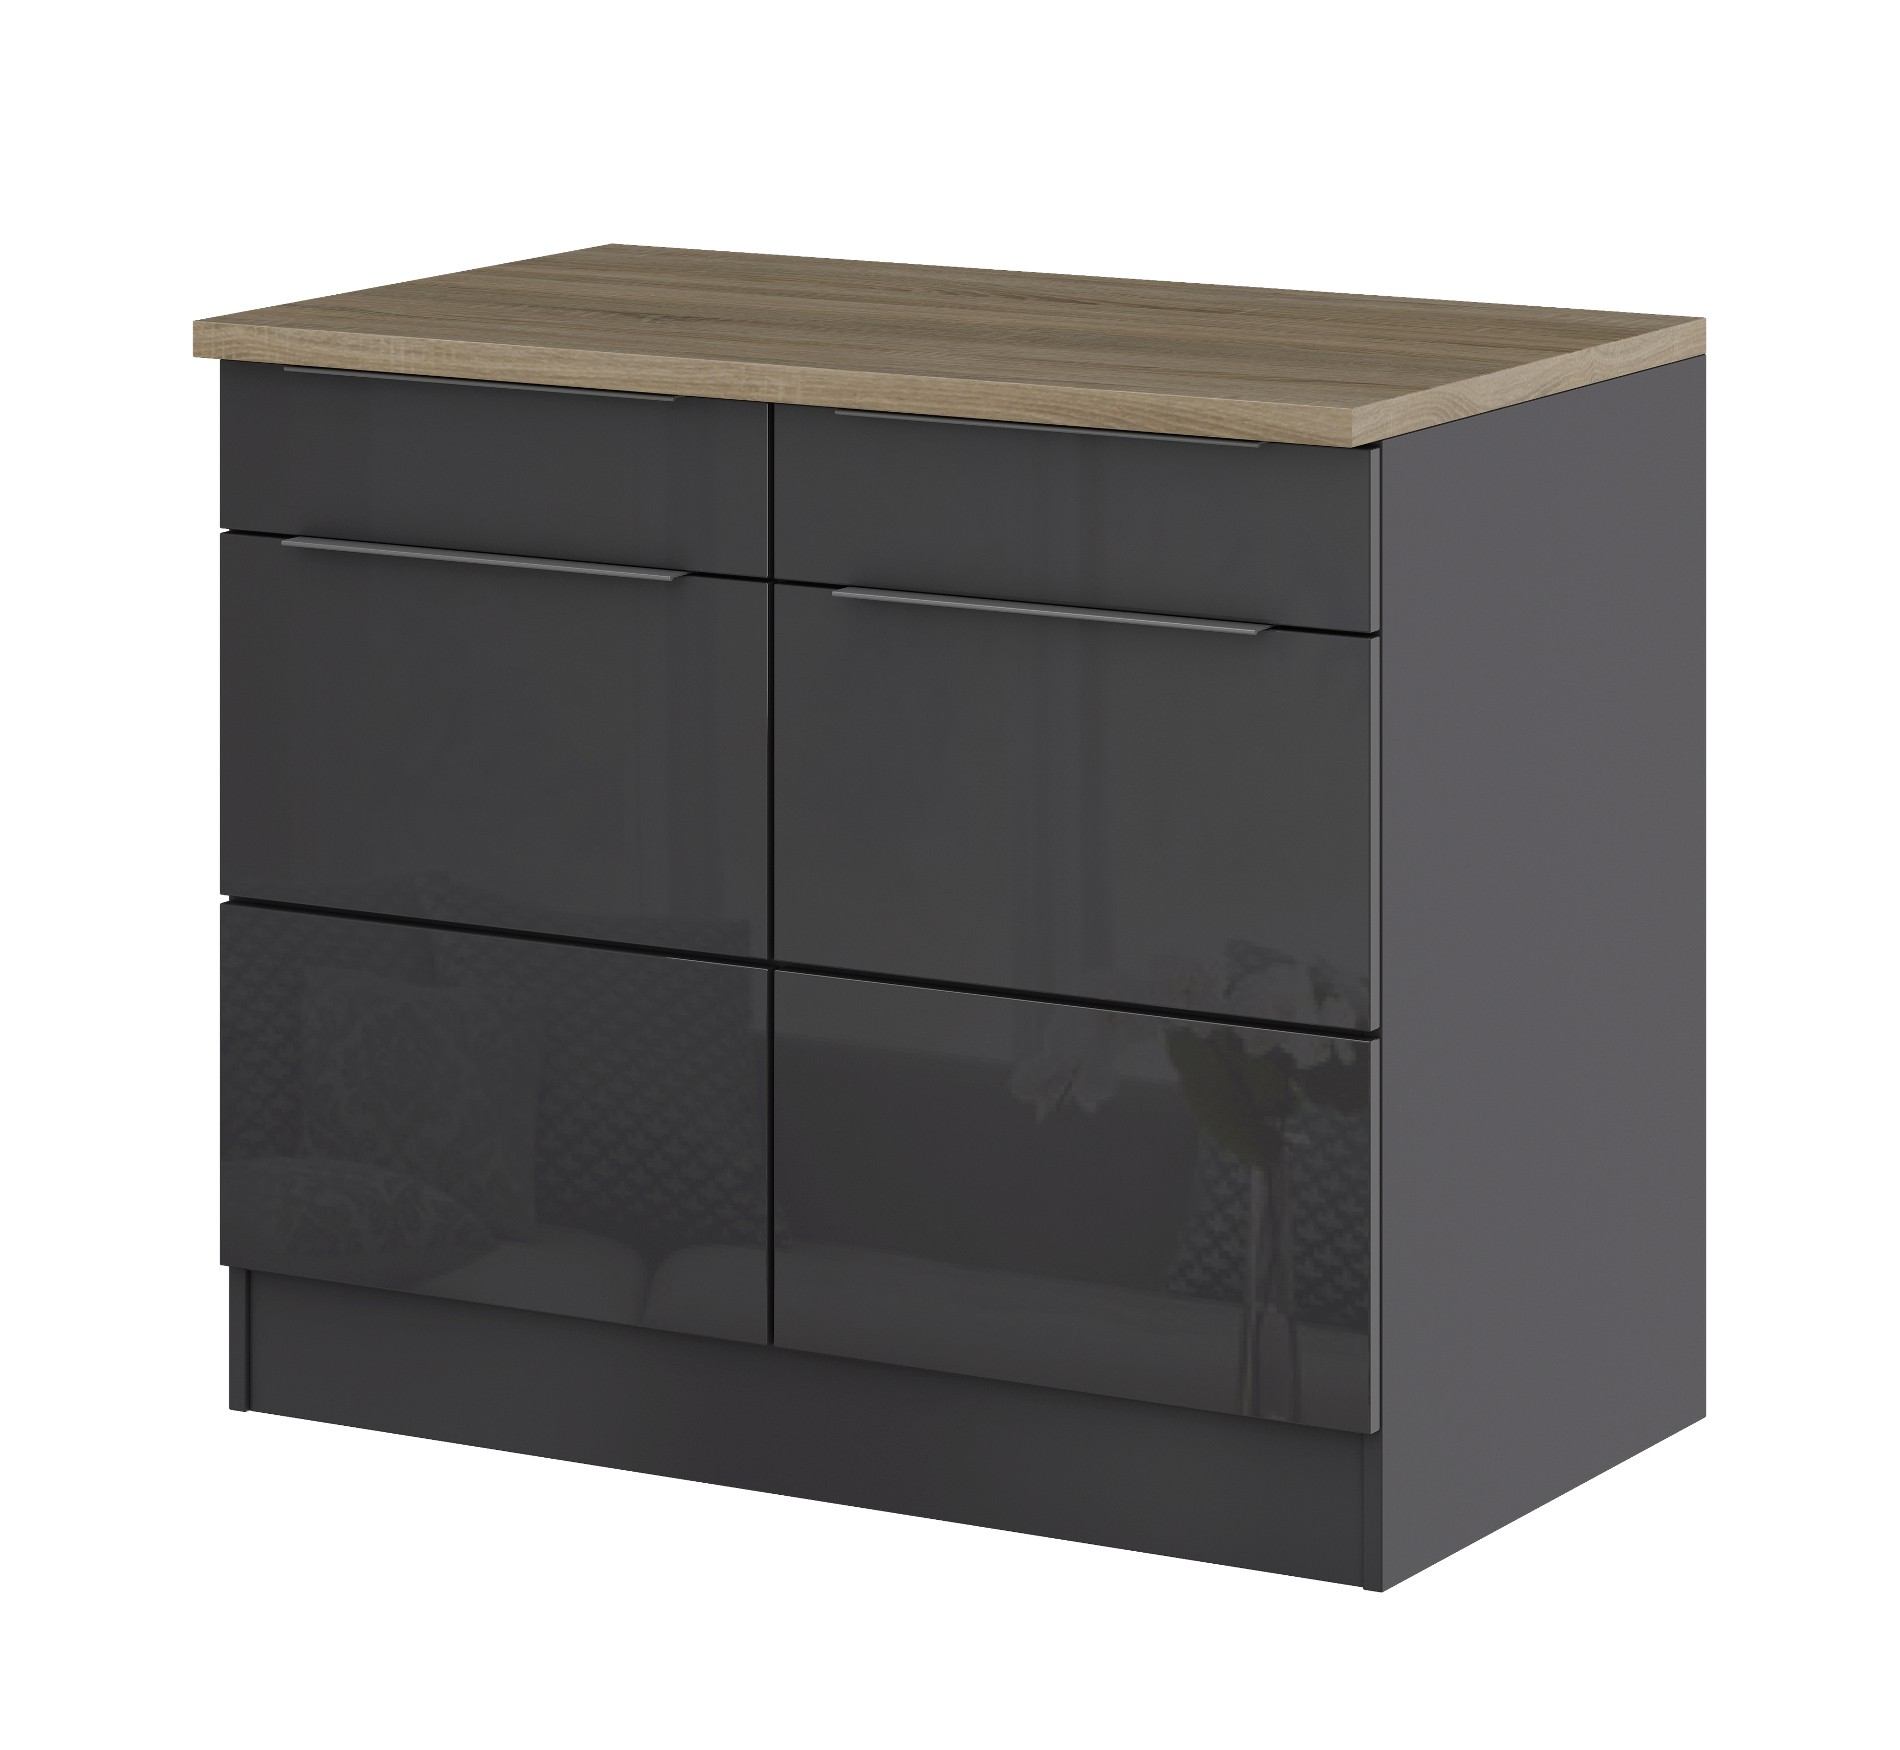 k chen unterschrank hamburg 2 t rig 100 cm breit. Black Bedroom Furniture Sets. Home Design Ideas